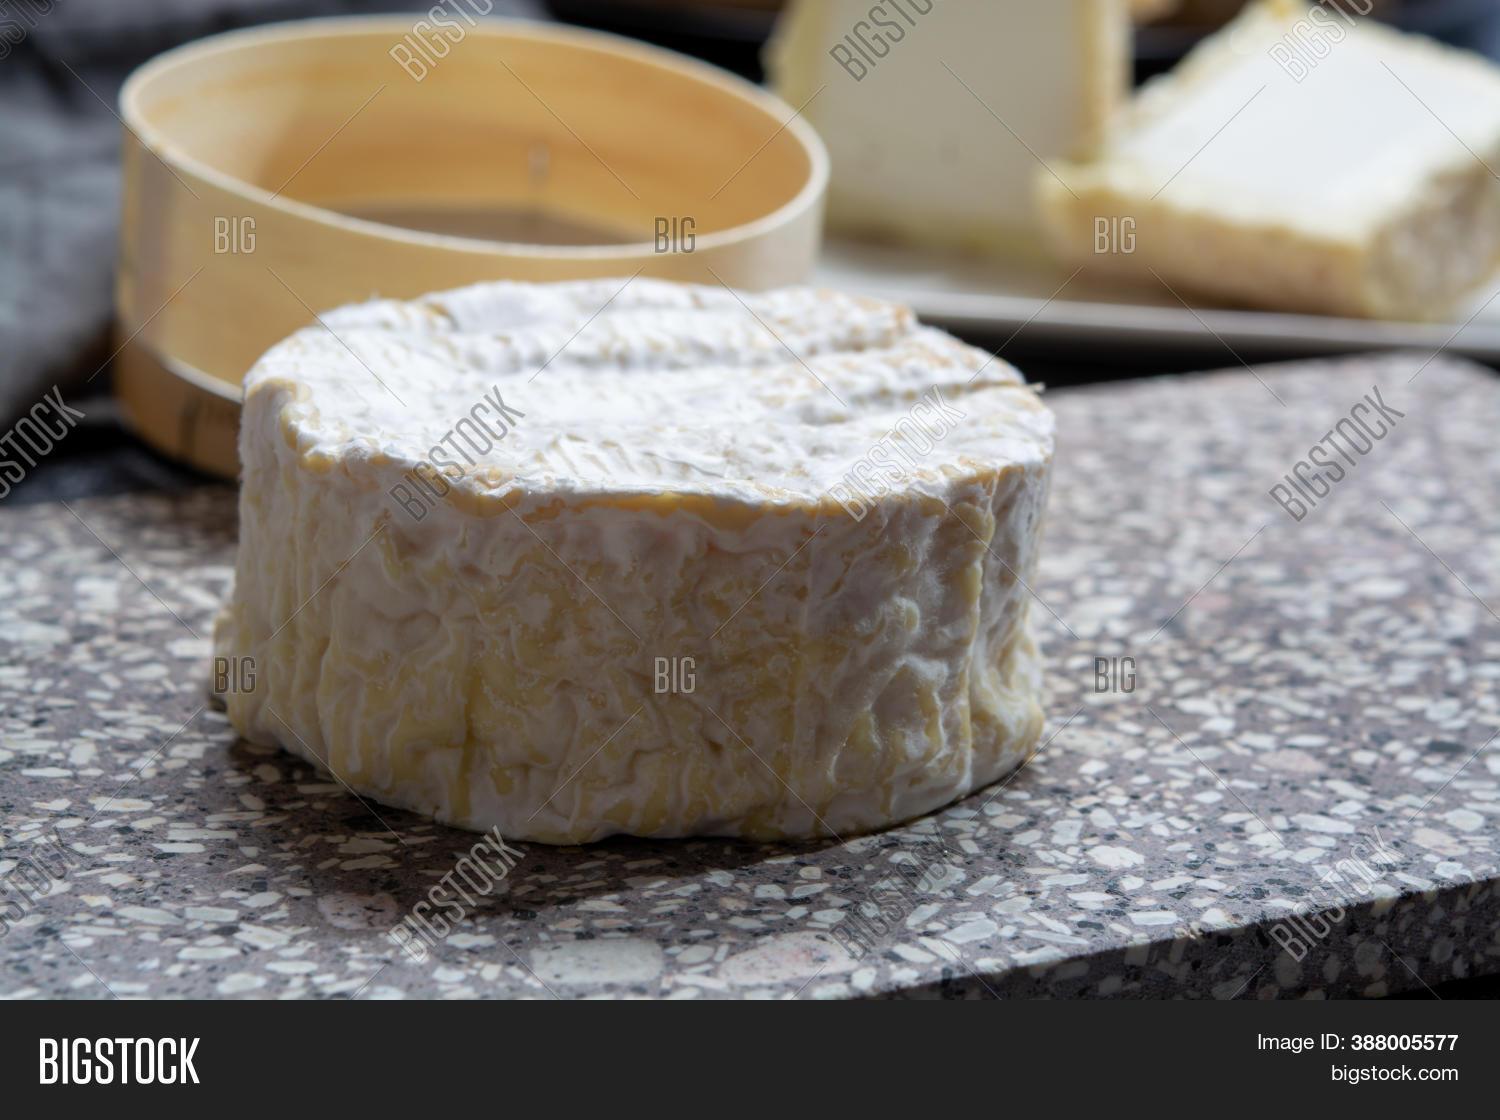 Cheese Collection Image Photo Free Trial Bigstock